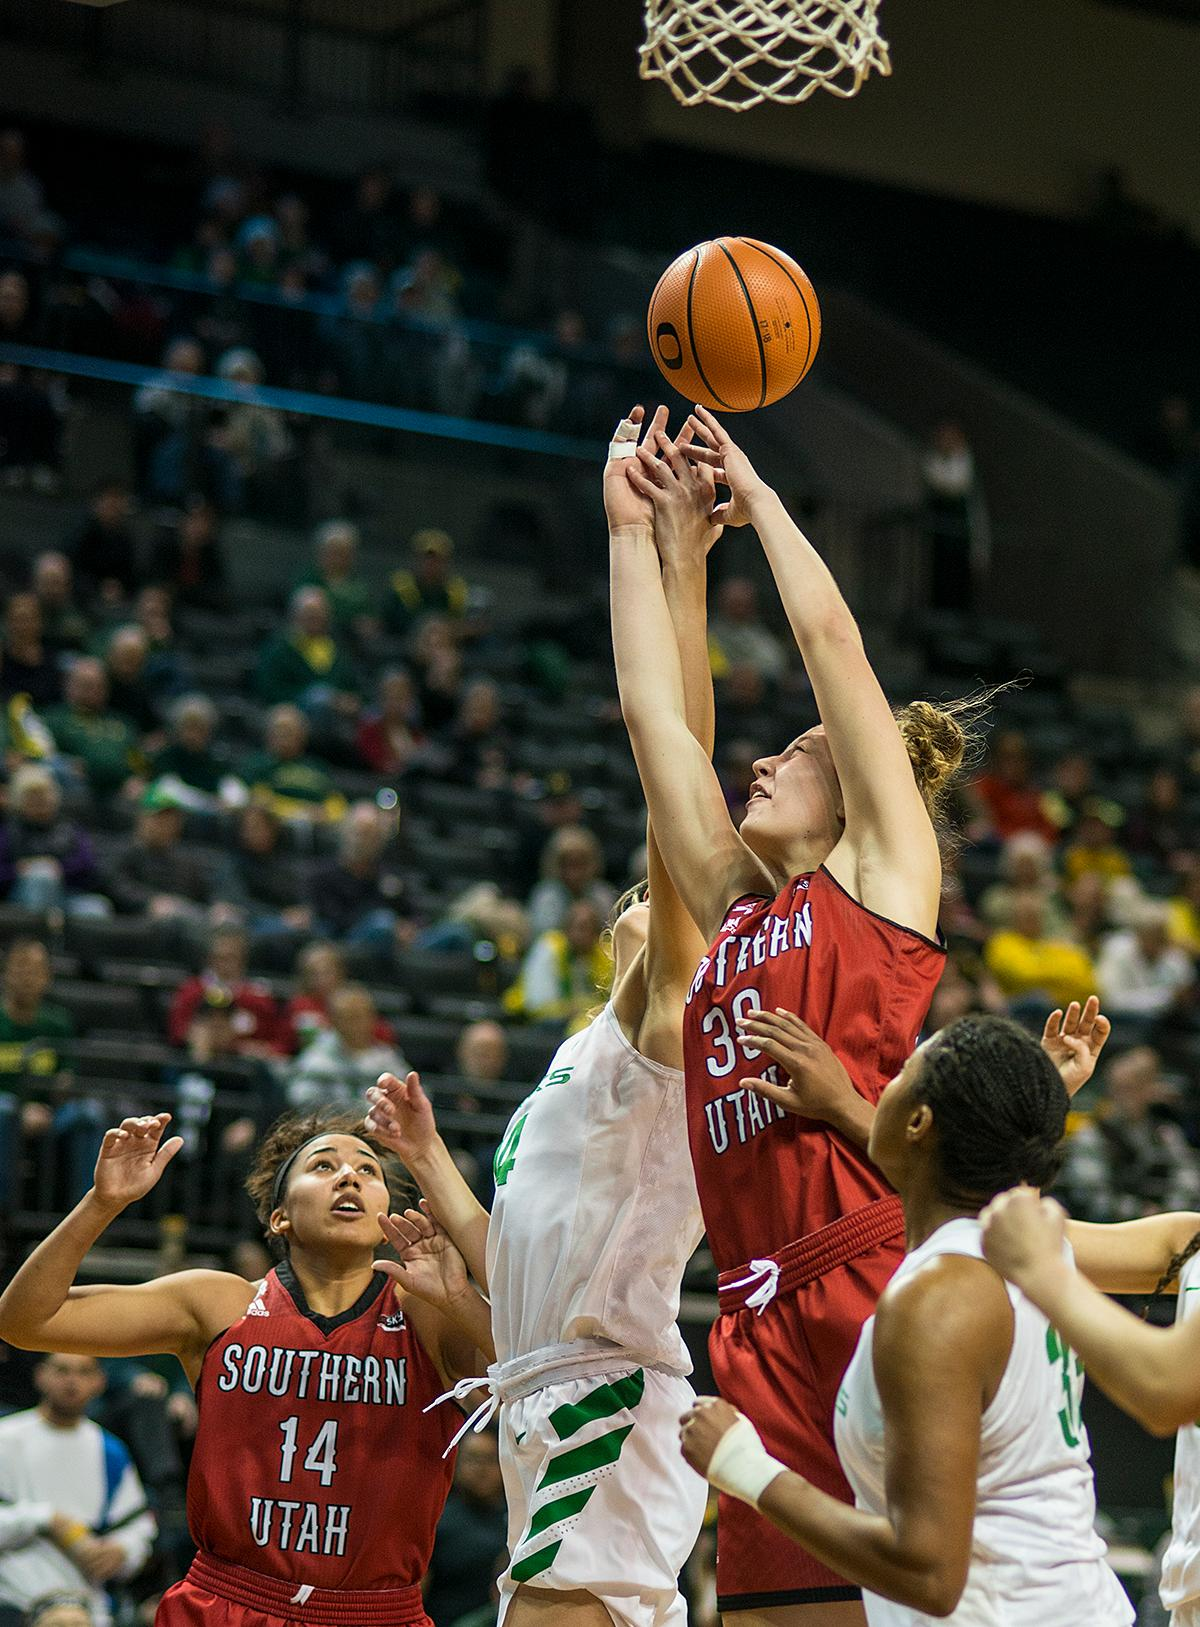 Southern Utah Thunderbirds Carlie Jones (#30) attempts to get the rebound. The University of Oregon Ducks women basketball team defeated the Southern Utah Thunderbirds 98-38 in Matthew Knight Arena Saturday afternoon. The Ducks had four players in double-digits: Ruthy Hebard with 13; Mallory McGwire with 10; Lexi Bando with 17 which included four three-pointers; and Sabrina Ionescu with 16 points. The Ducks overwhelmed the Thunderbirds, shooting 50% in field goals to South Utah's 26.8%, 53.8% in three-pointers to 12.5%, and 85.7% in free throws to 50%. The Ducks, with an overall record of 8-1, and coming into this game ranked 9th, will play their next home game against Ole Miss on December 17. Photo by Rhianna Gelhart, Oregon News Lab